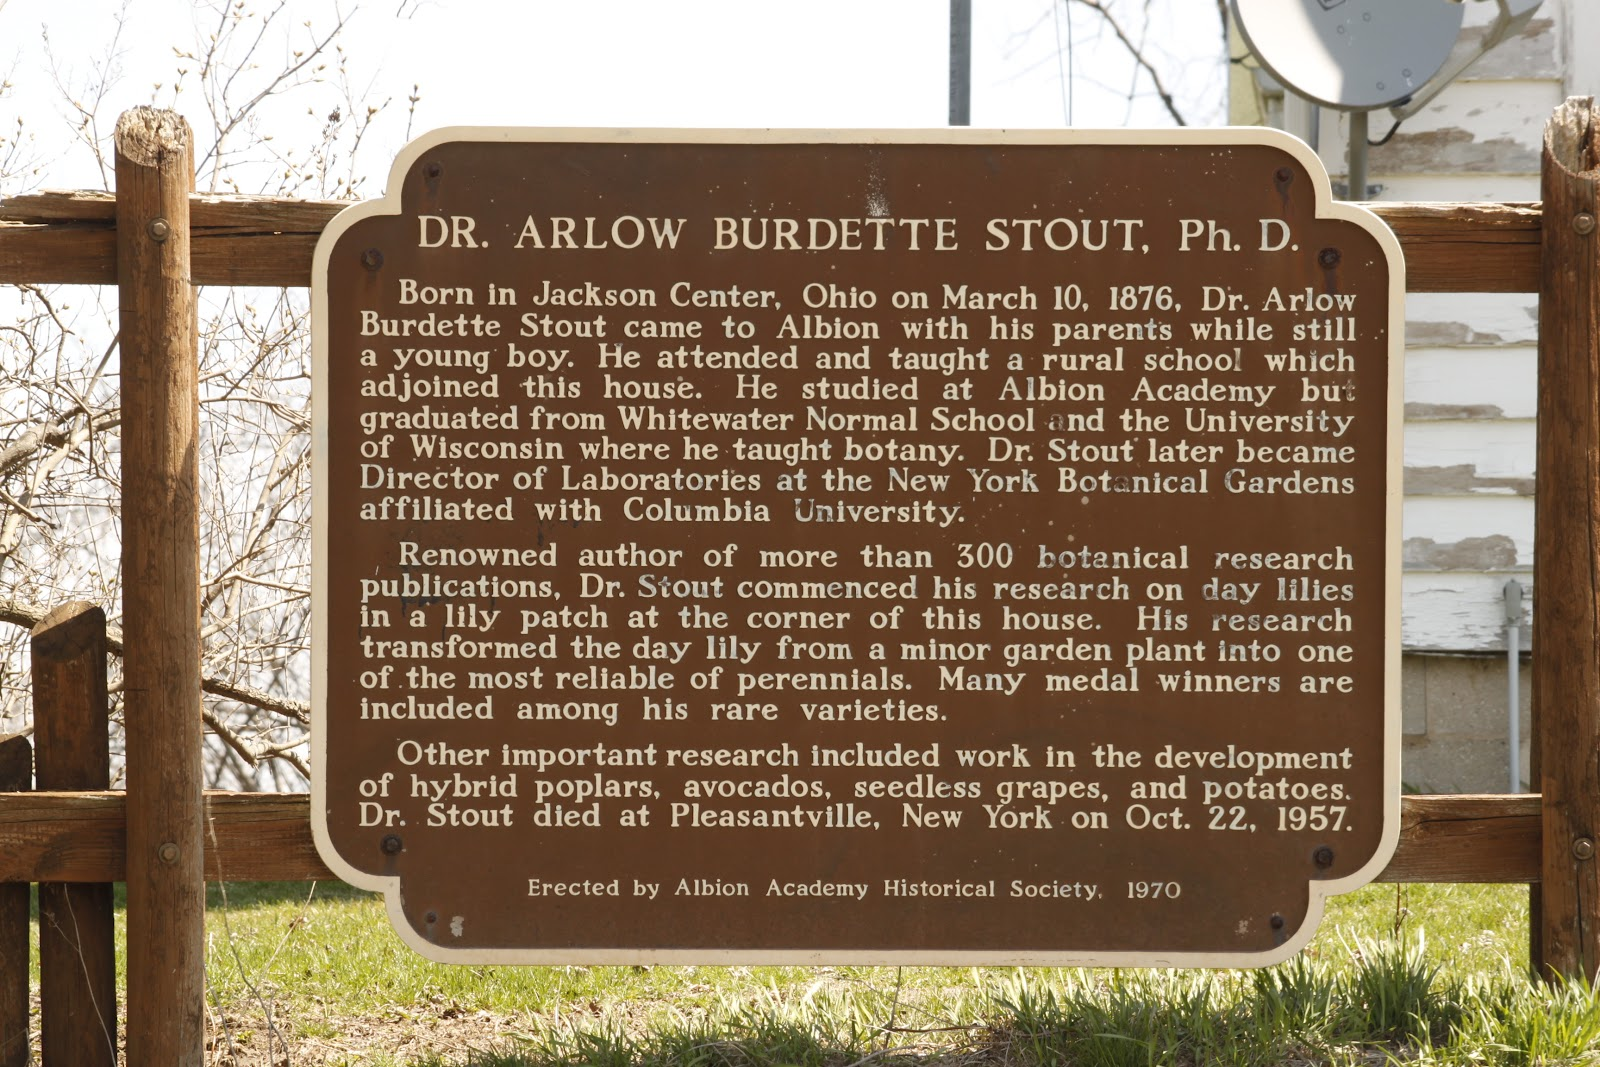 Marker of the Week:<br>WRL-86: Dr. Arlow Burdette Stout, Ph.D.